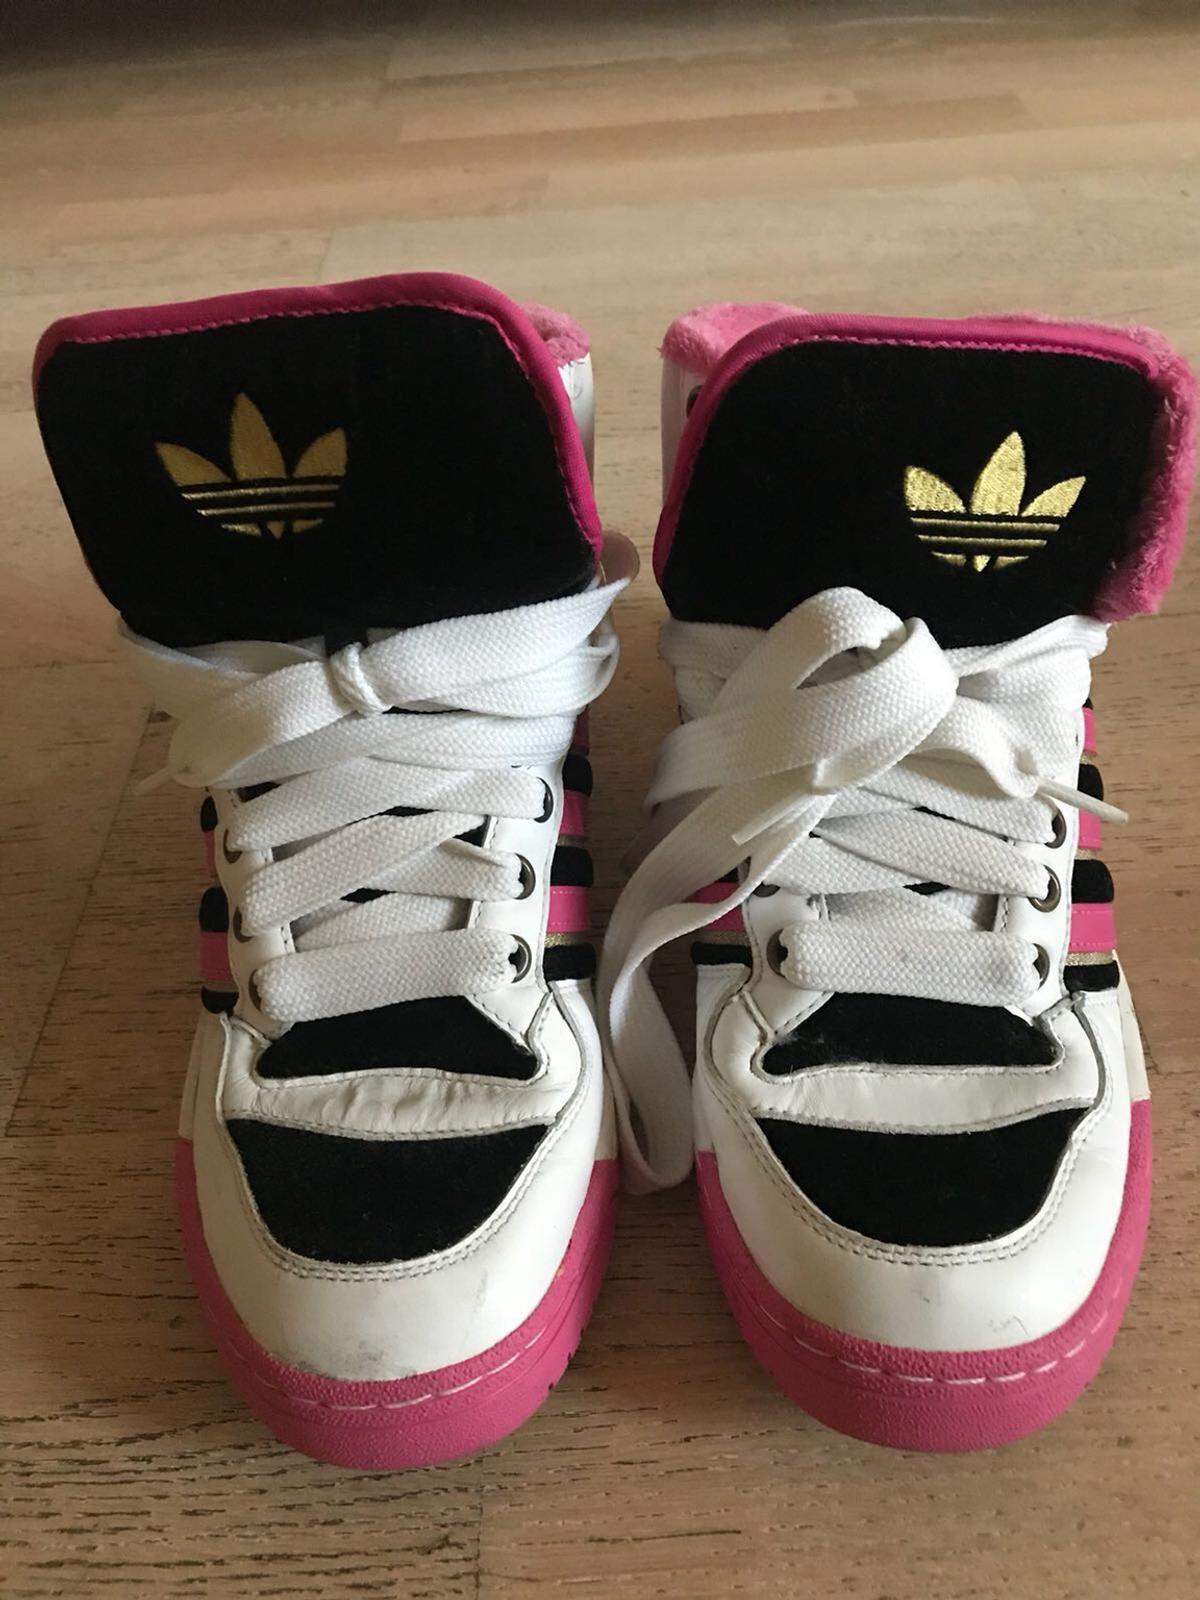 Missy Elliot for ADIDAS knee high shell toes